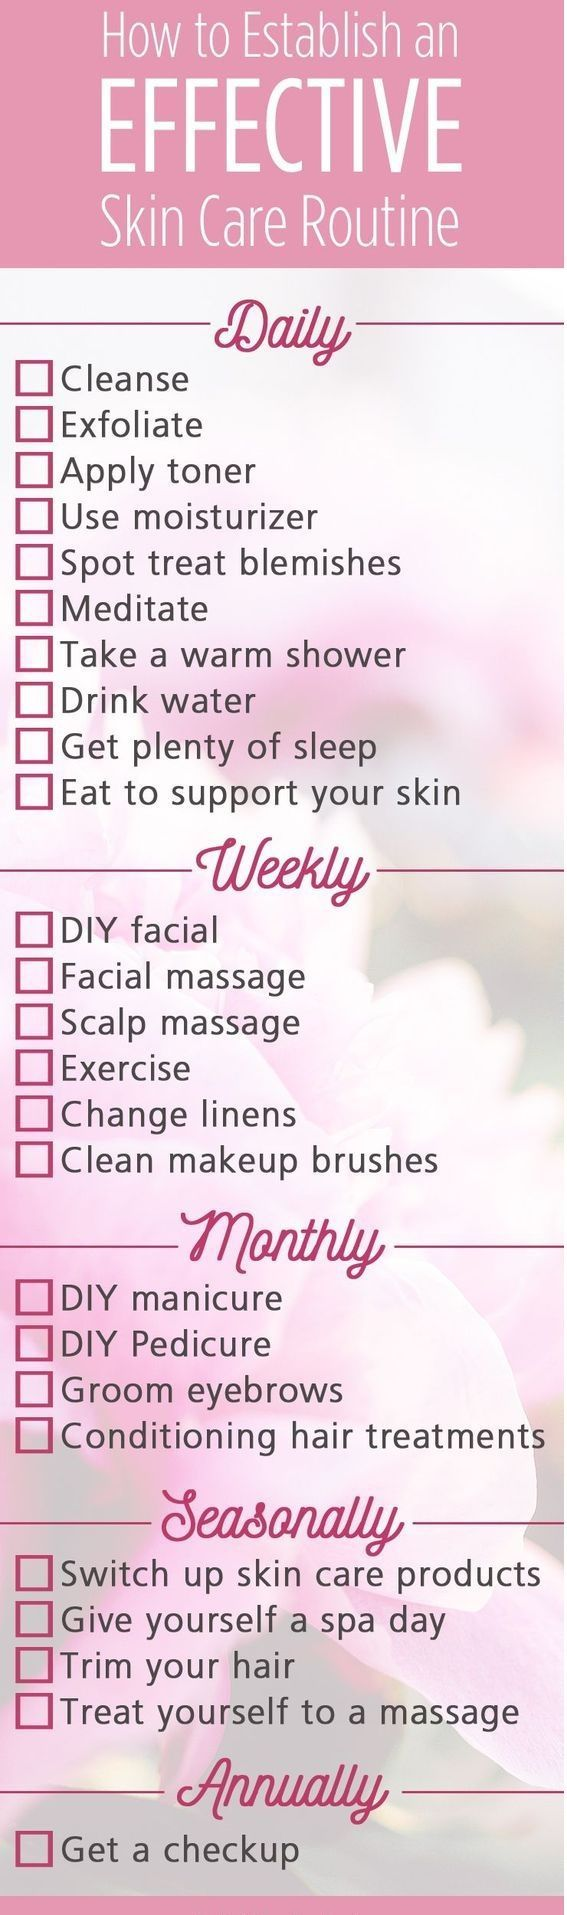 skin care routine steps, daily skin care routine at home, skin care routine for acne, skin care routine for dry skin, skin care routine 30s, skin care routine for 20s, best skin care routine for 40s, skincare routine order